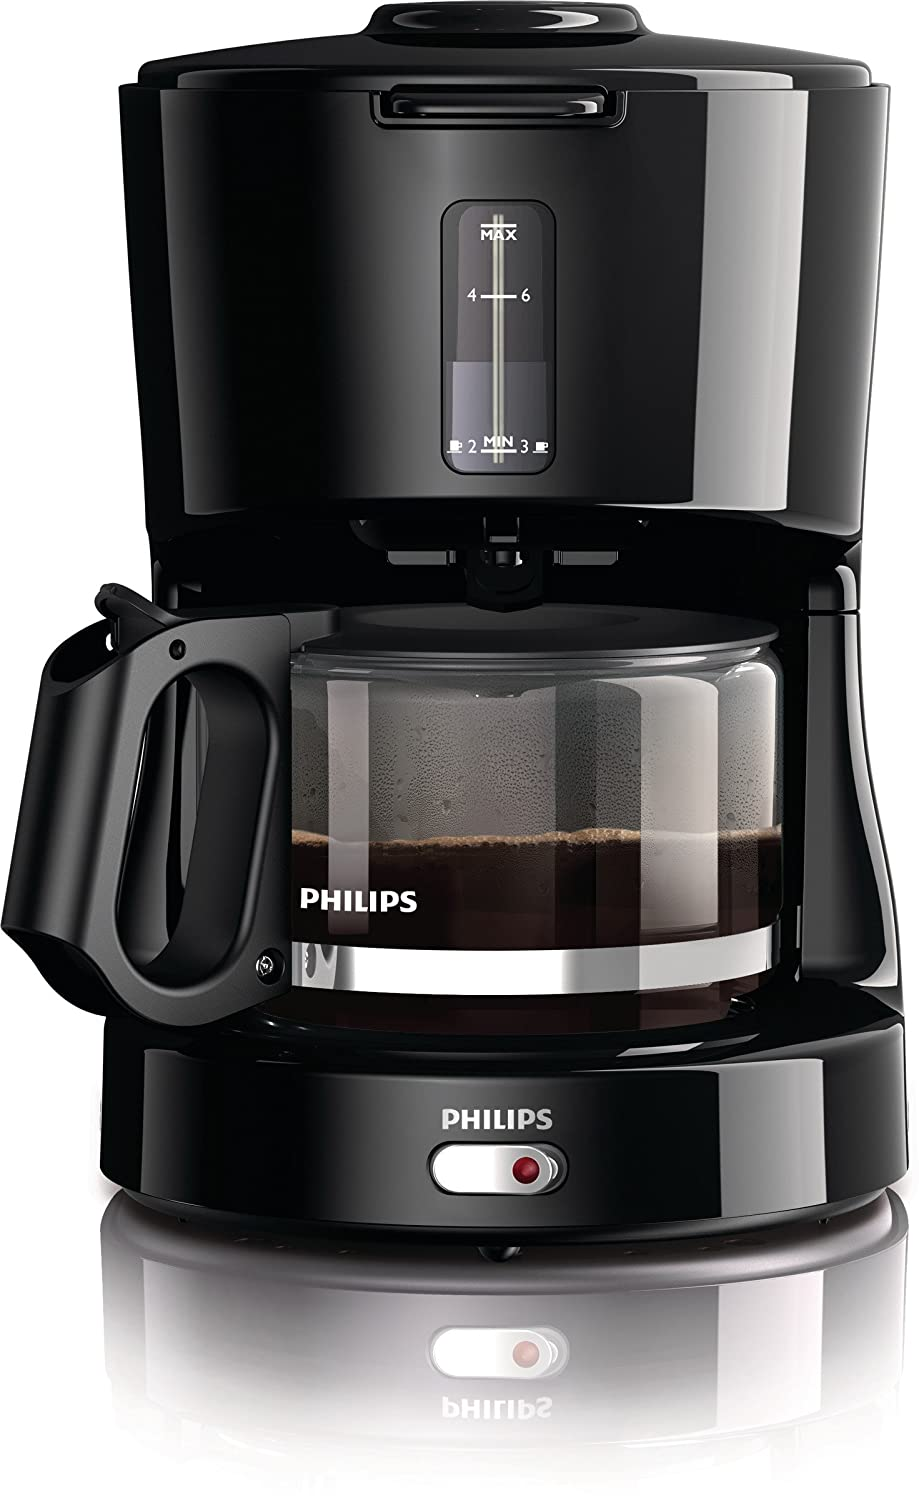 Amazon.com: Philips HD7450 6-Cup Coffee Maker, 220-volt (no ...